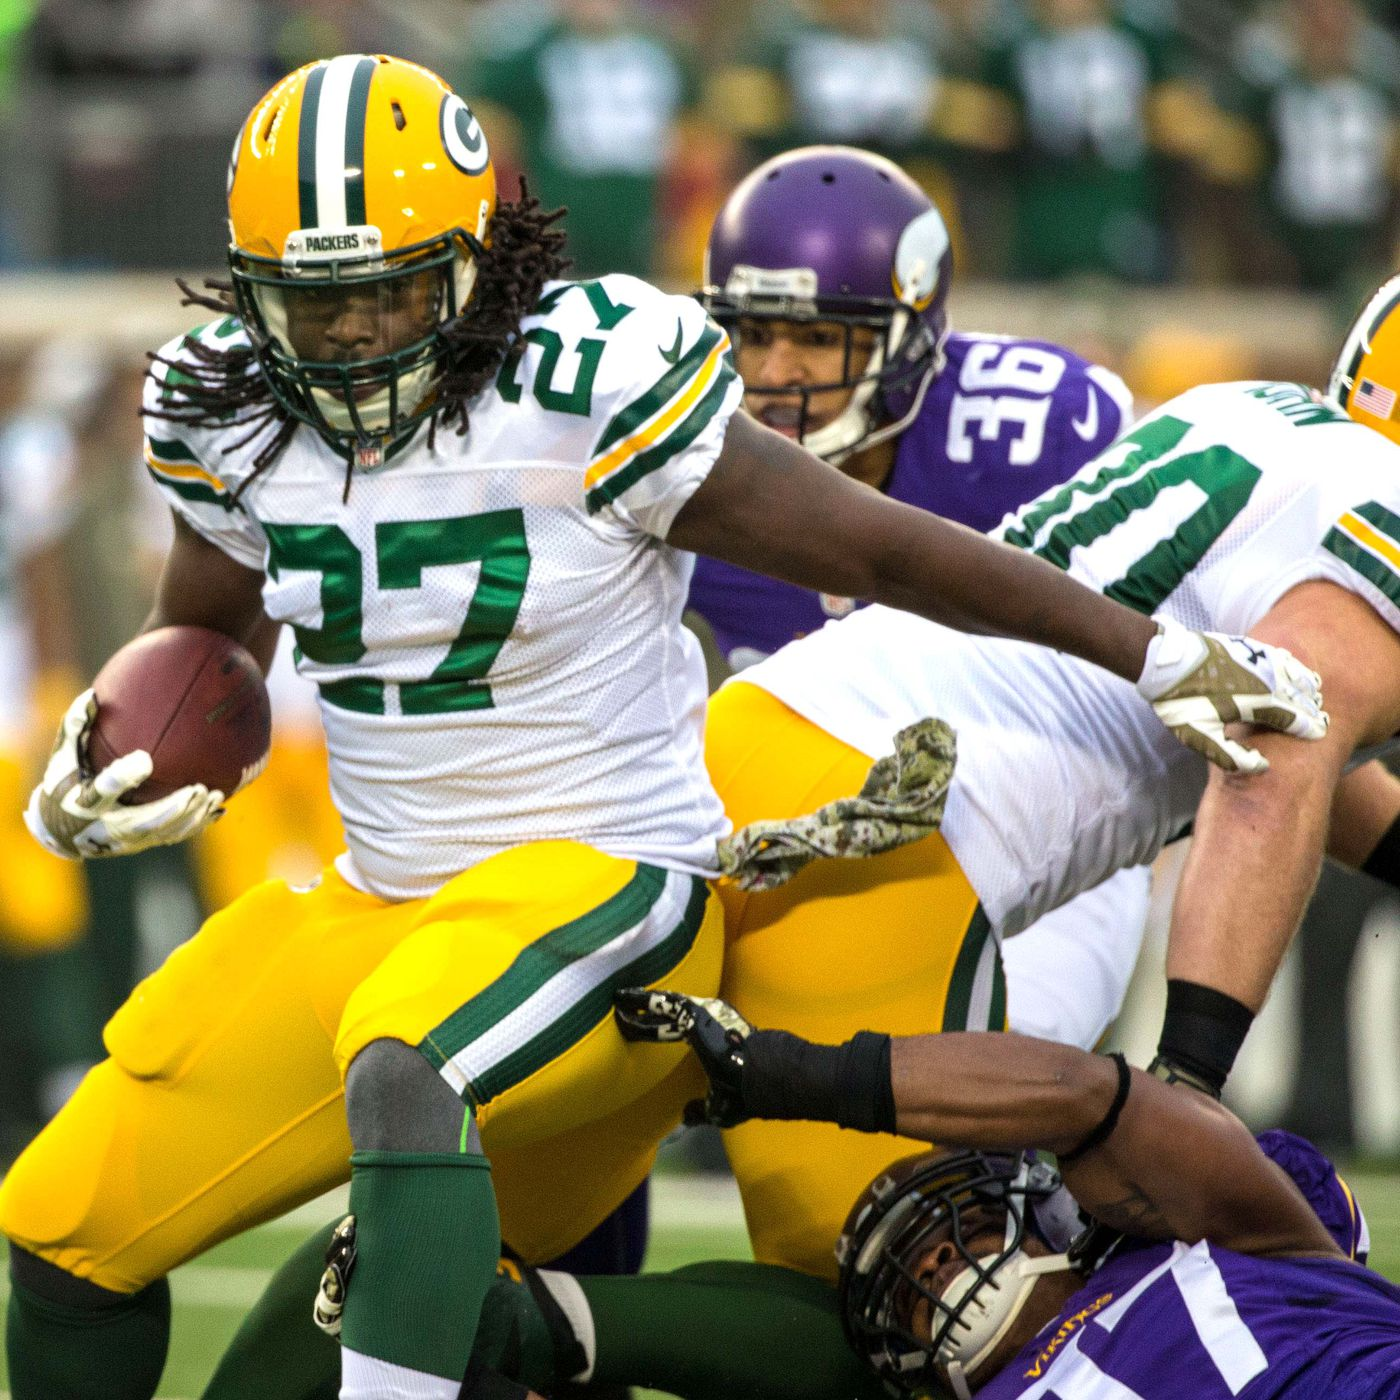 Packers Vs Vikings Final Score Lacy Runs For 125 Scores Twice In 24 21 Win Acme Packing Company